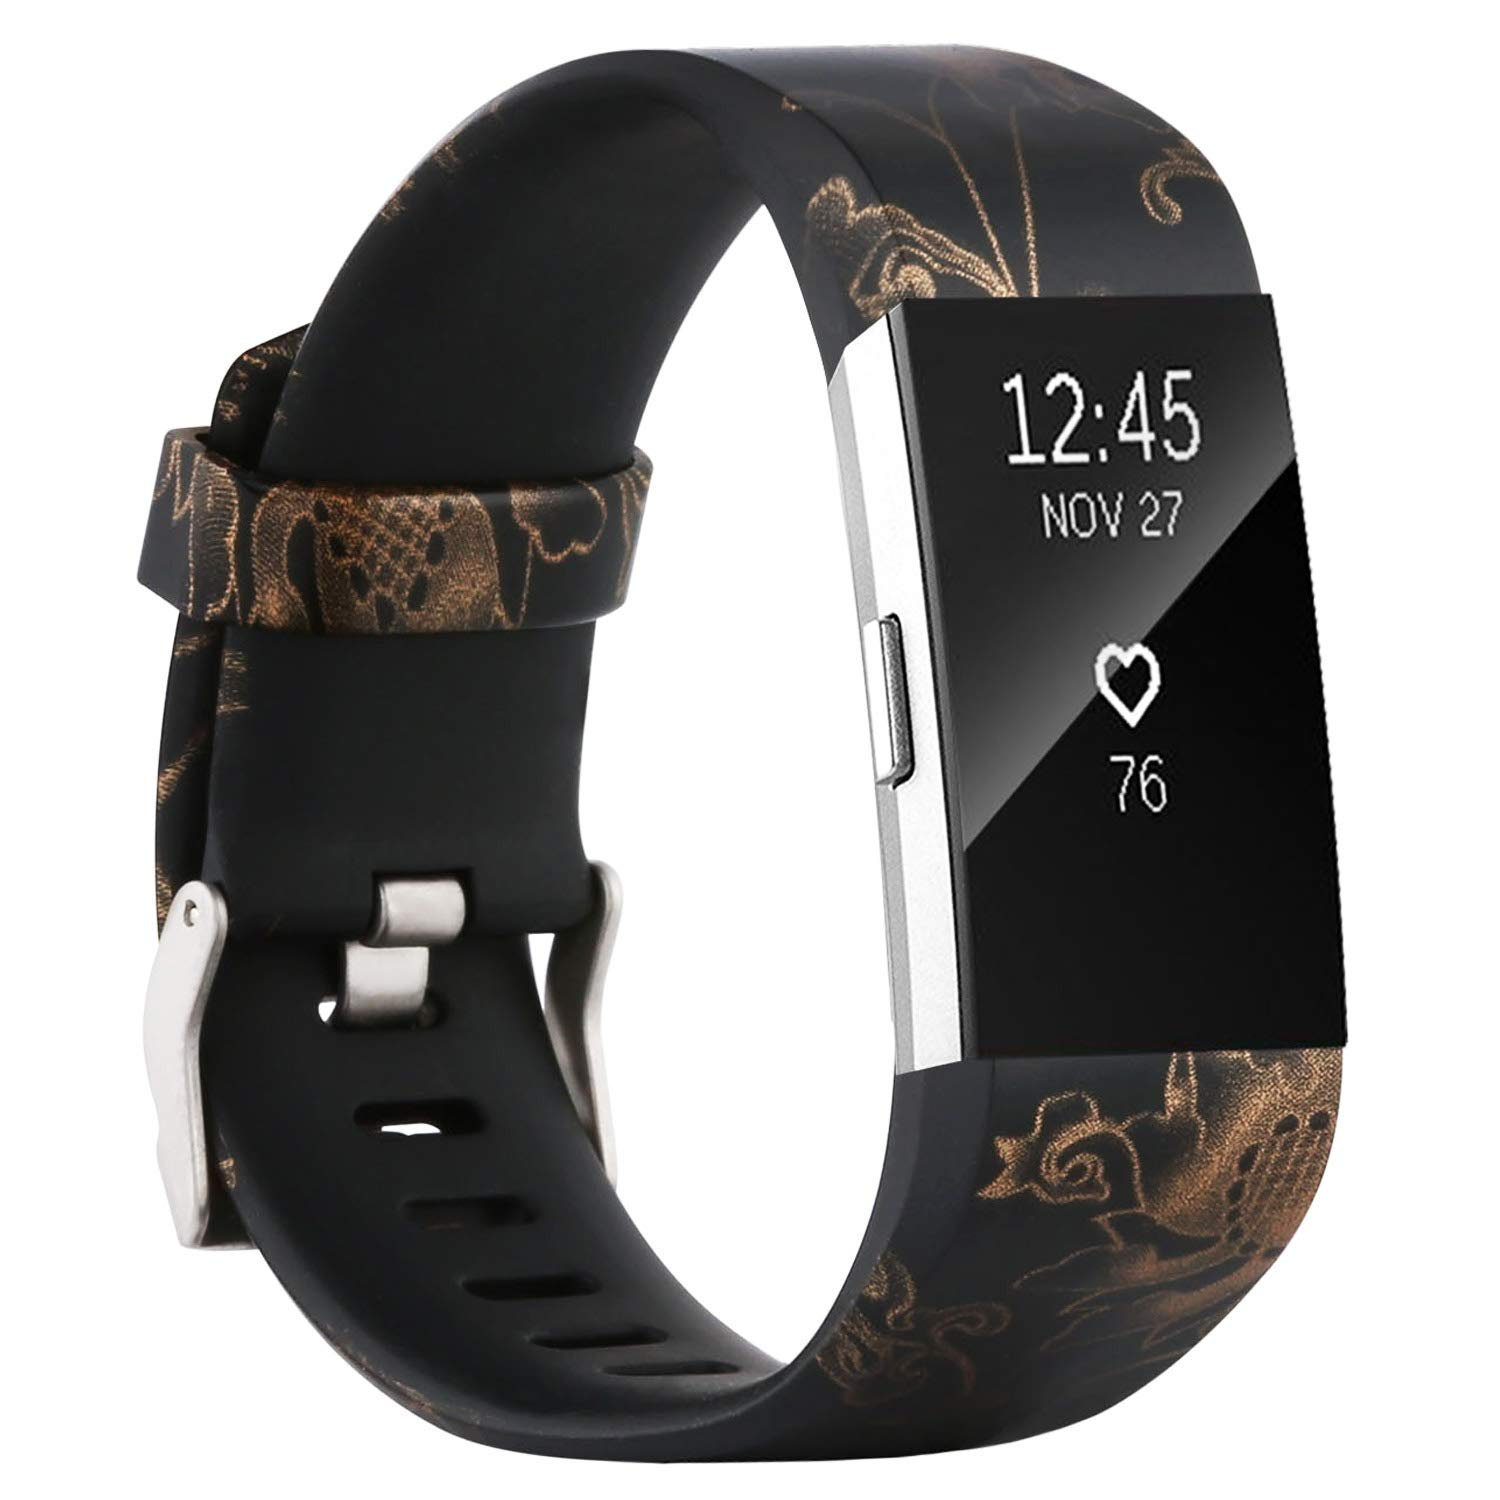 honecumi Replacement Bands Compatible with Charge 2 Wristbands Rose Gold Watch Bands/Strap for Men Women Colorful Pattern Bands with Metal Clasp Large Small Bands